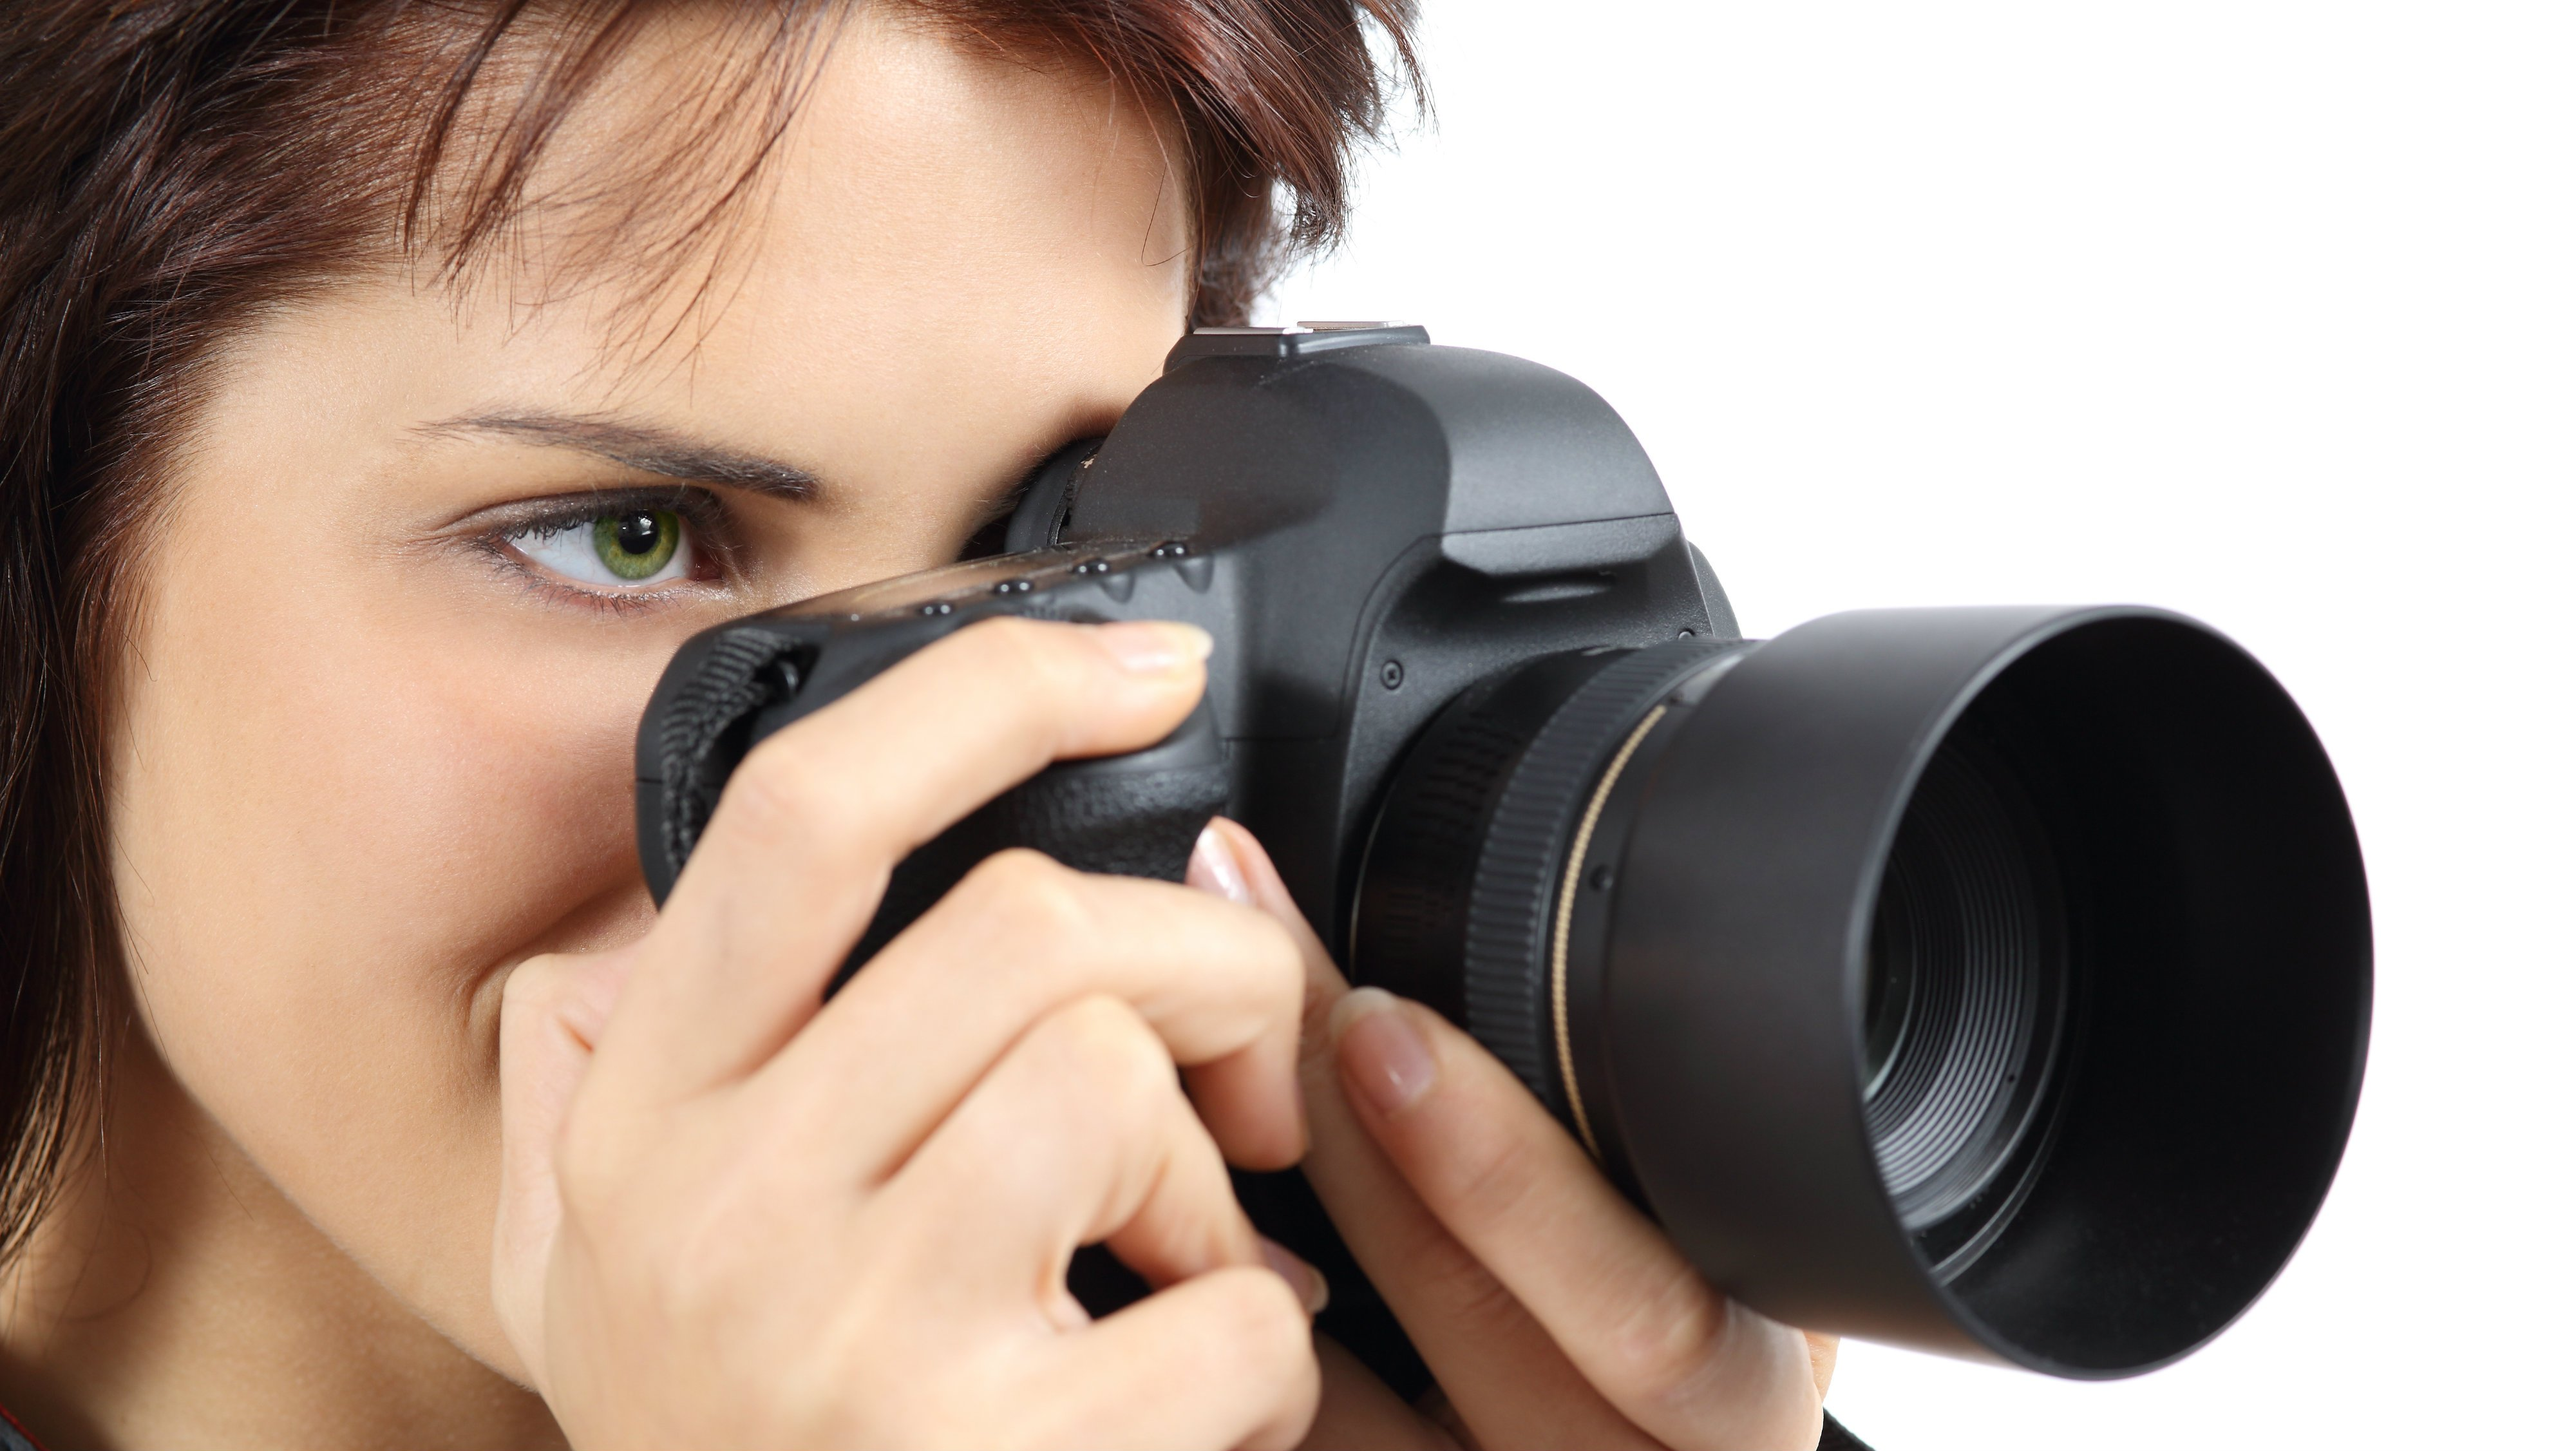 camera digital holding courses photographer udemy course dslr woman positives enrolling associated background fotosearch cameras expertreviews isolated advertisement